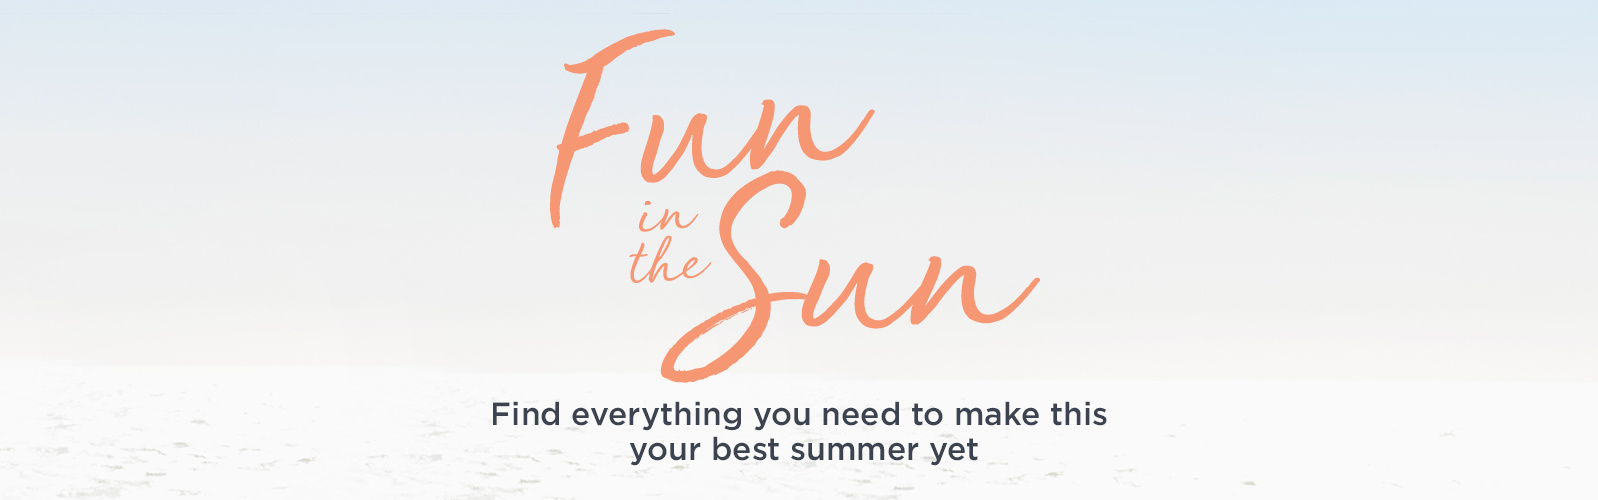 Fun in the Sun  Find everything you need to make this your best summer yet